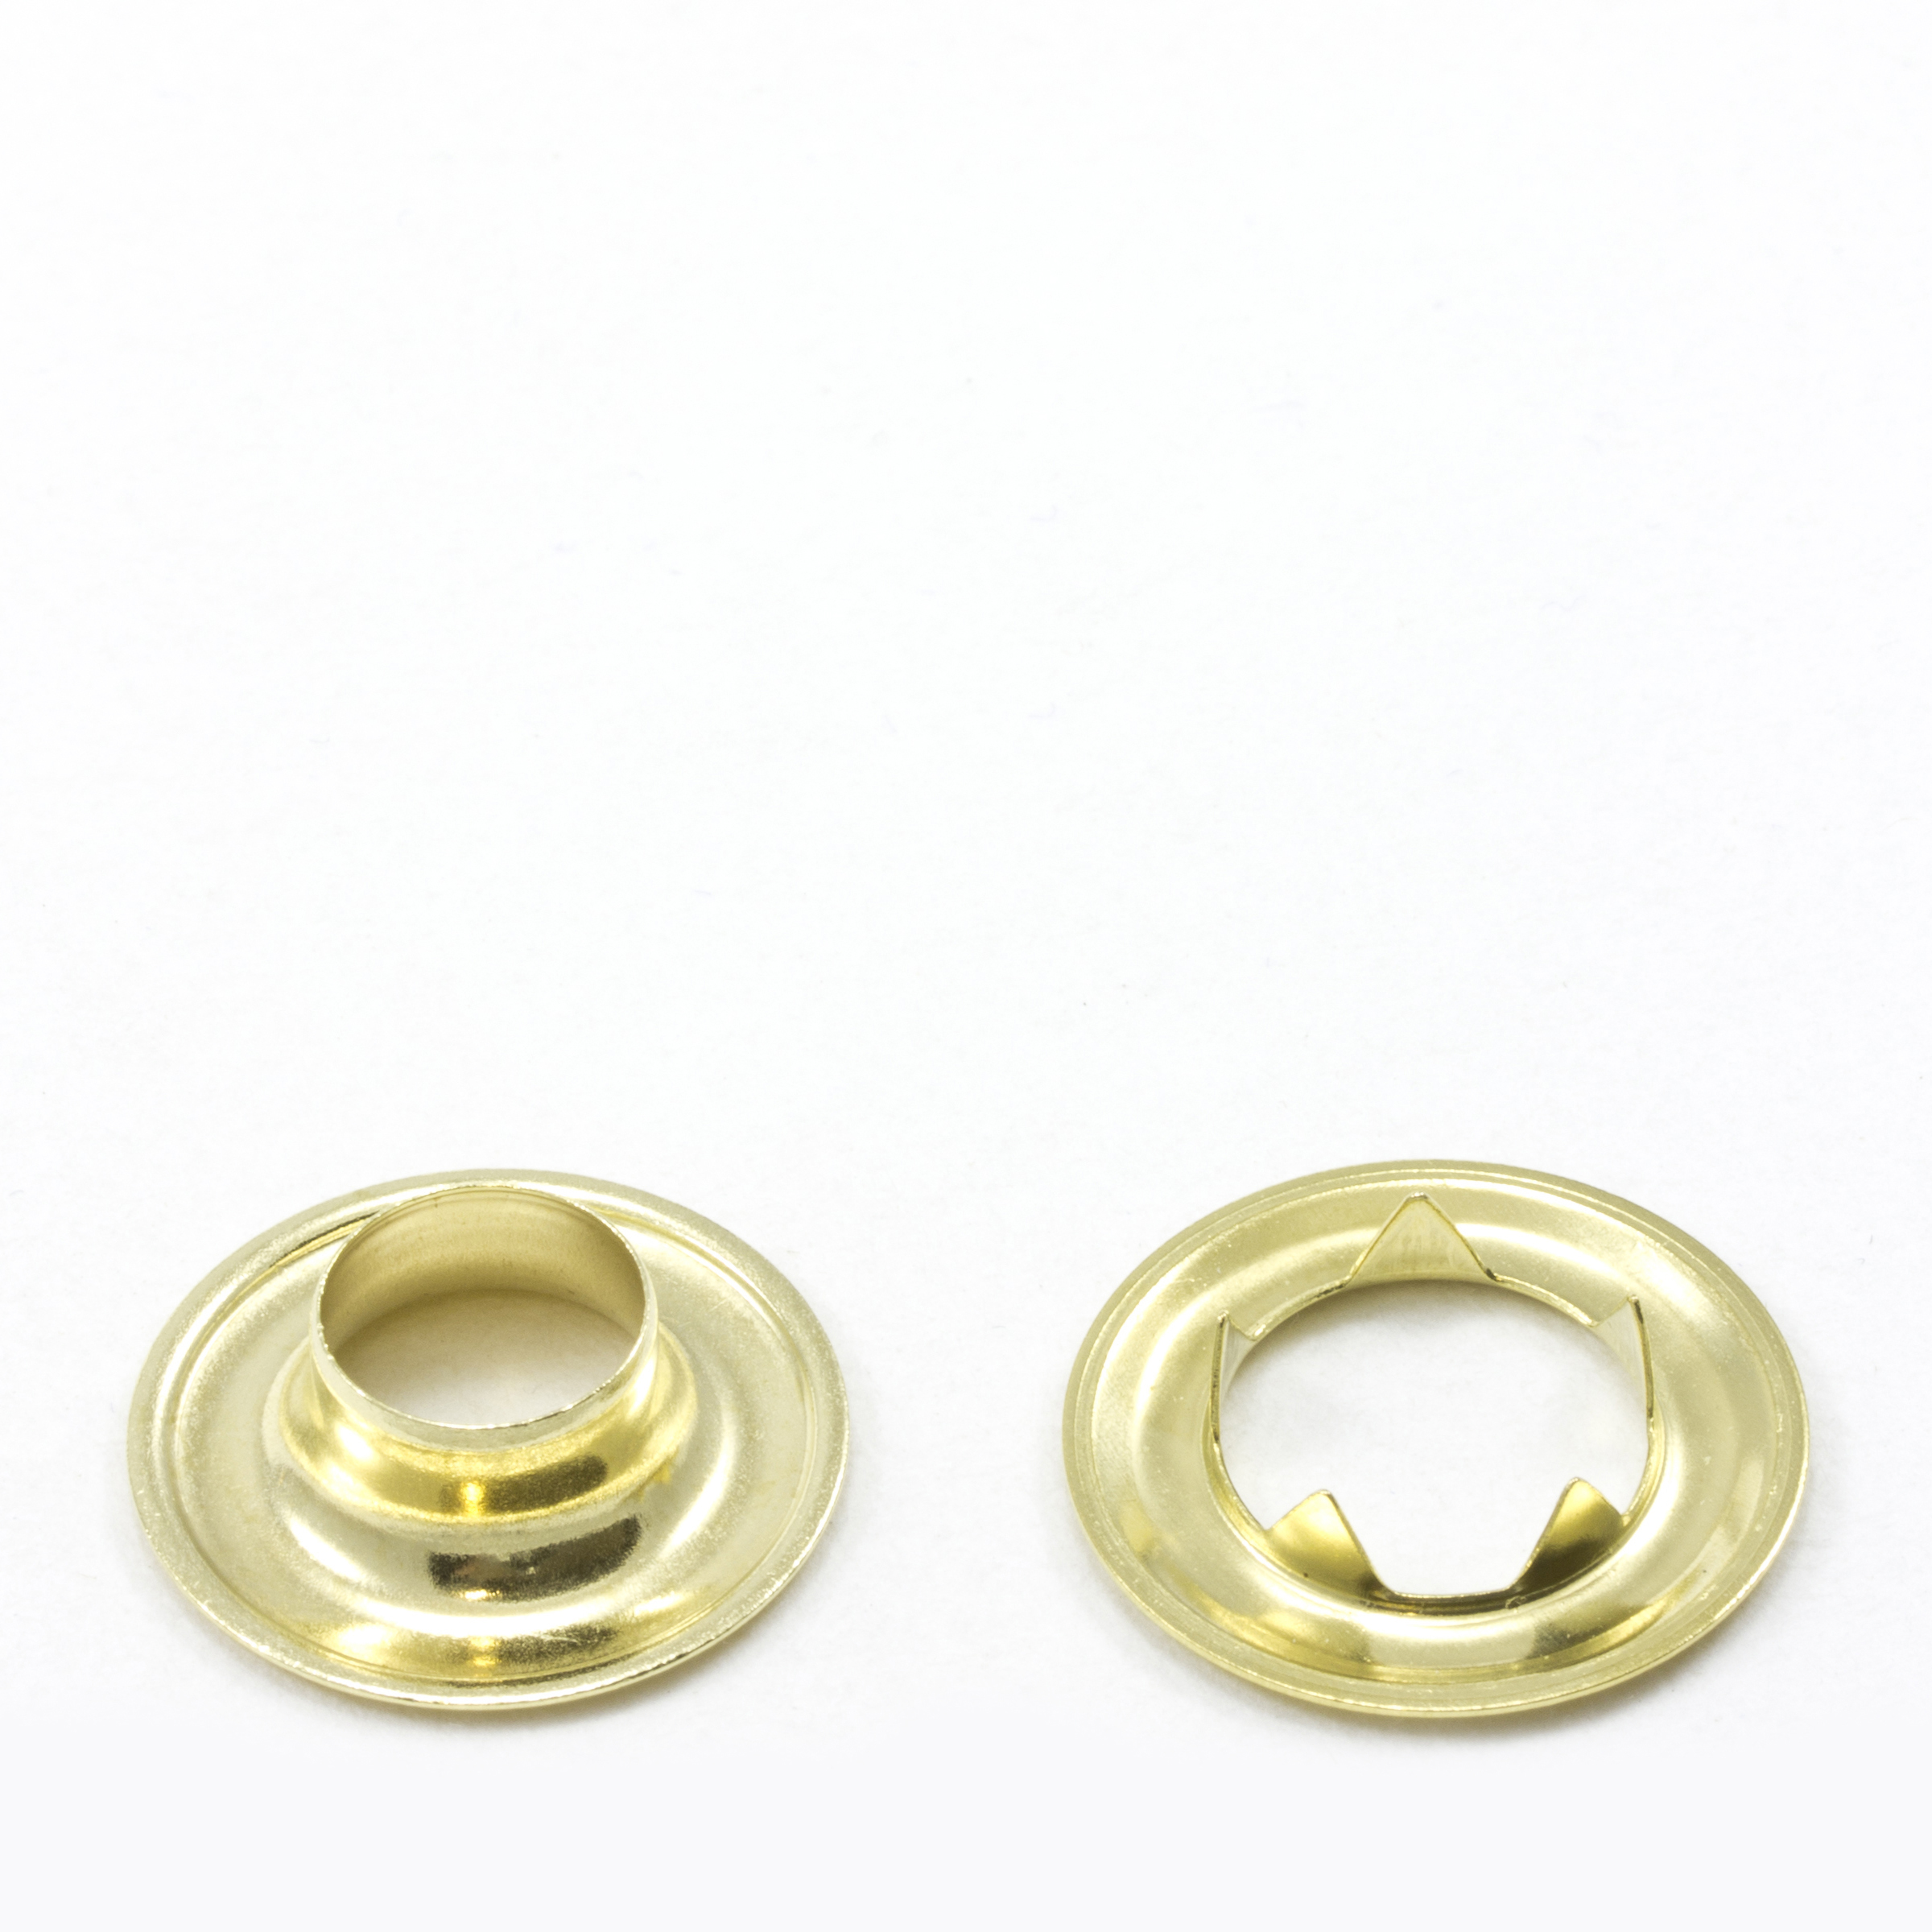 Grommet with Tooth Washer #2 Brass 3/8